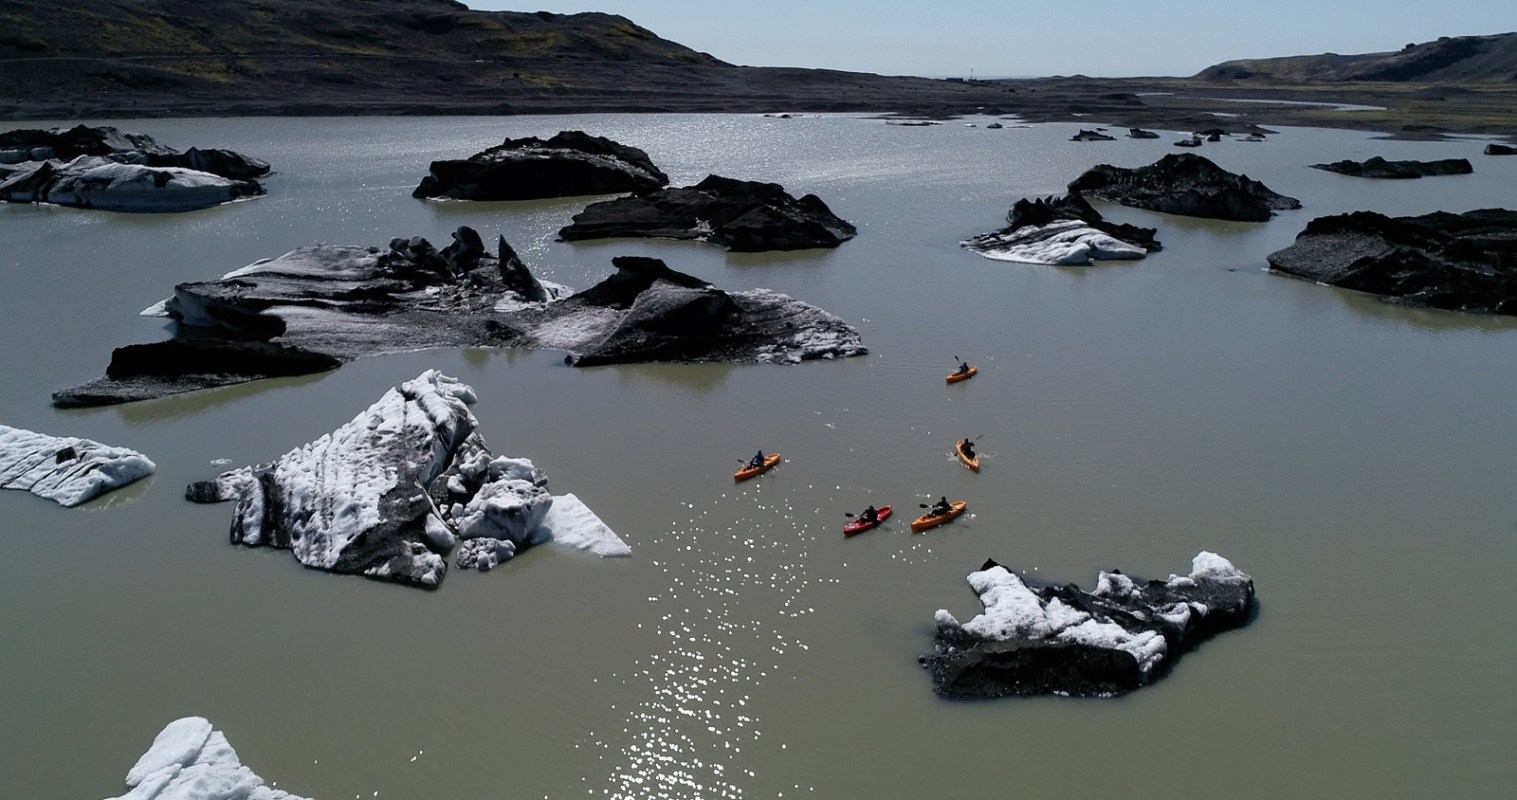 Floating Among The Jewels: Kayaking The Sparkling Waters Of Sólheimajökull